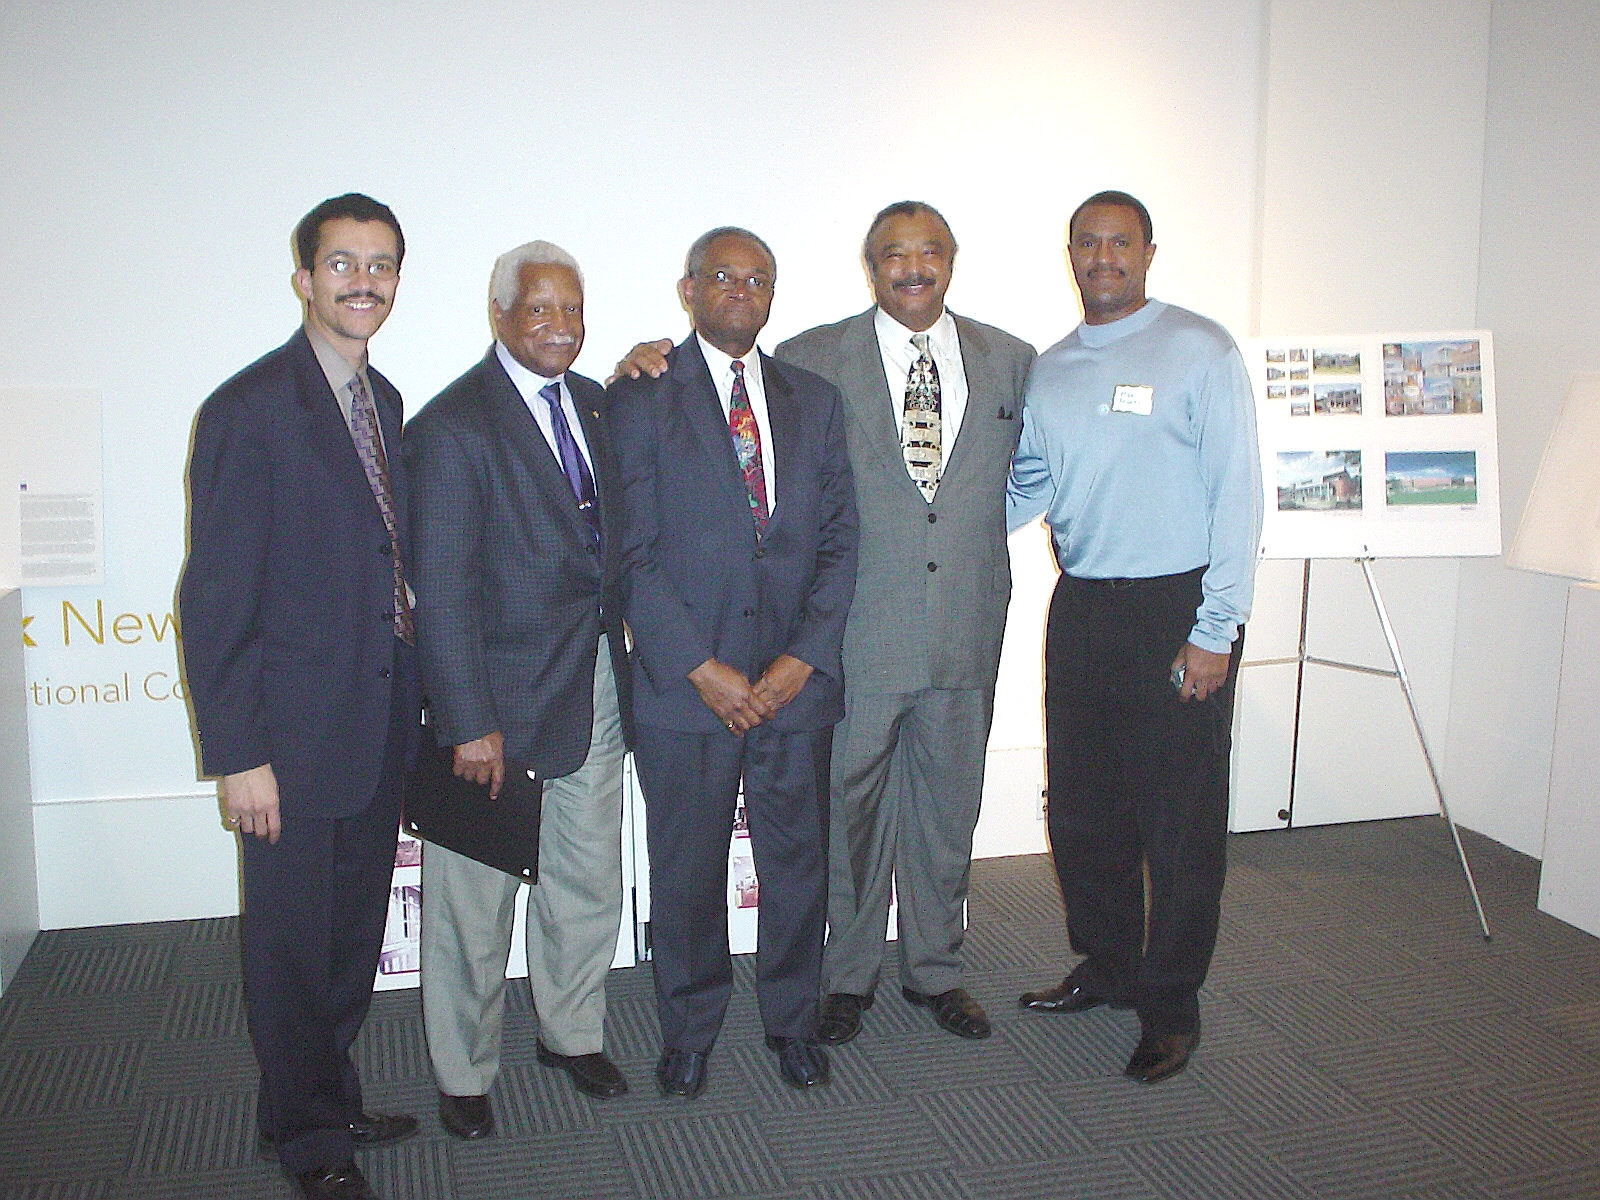 2005 - [Left to Right] Eben Smith, Wendell Campbell, Charles Smith, Bill Brazely, Mike Rodgers